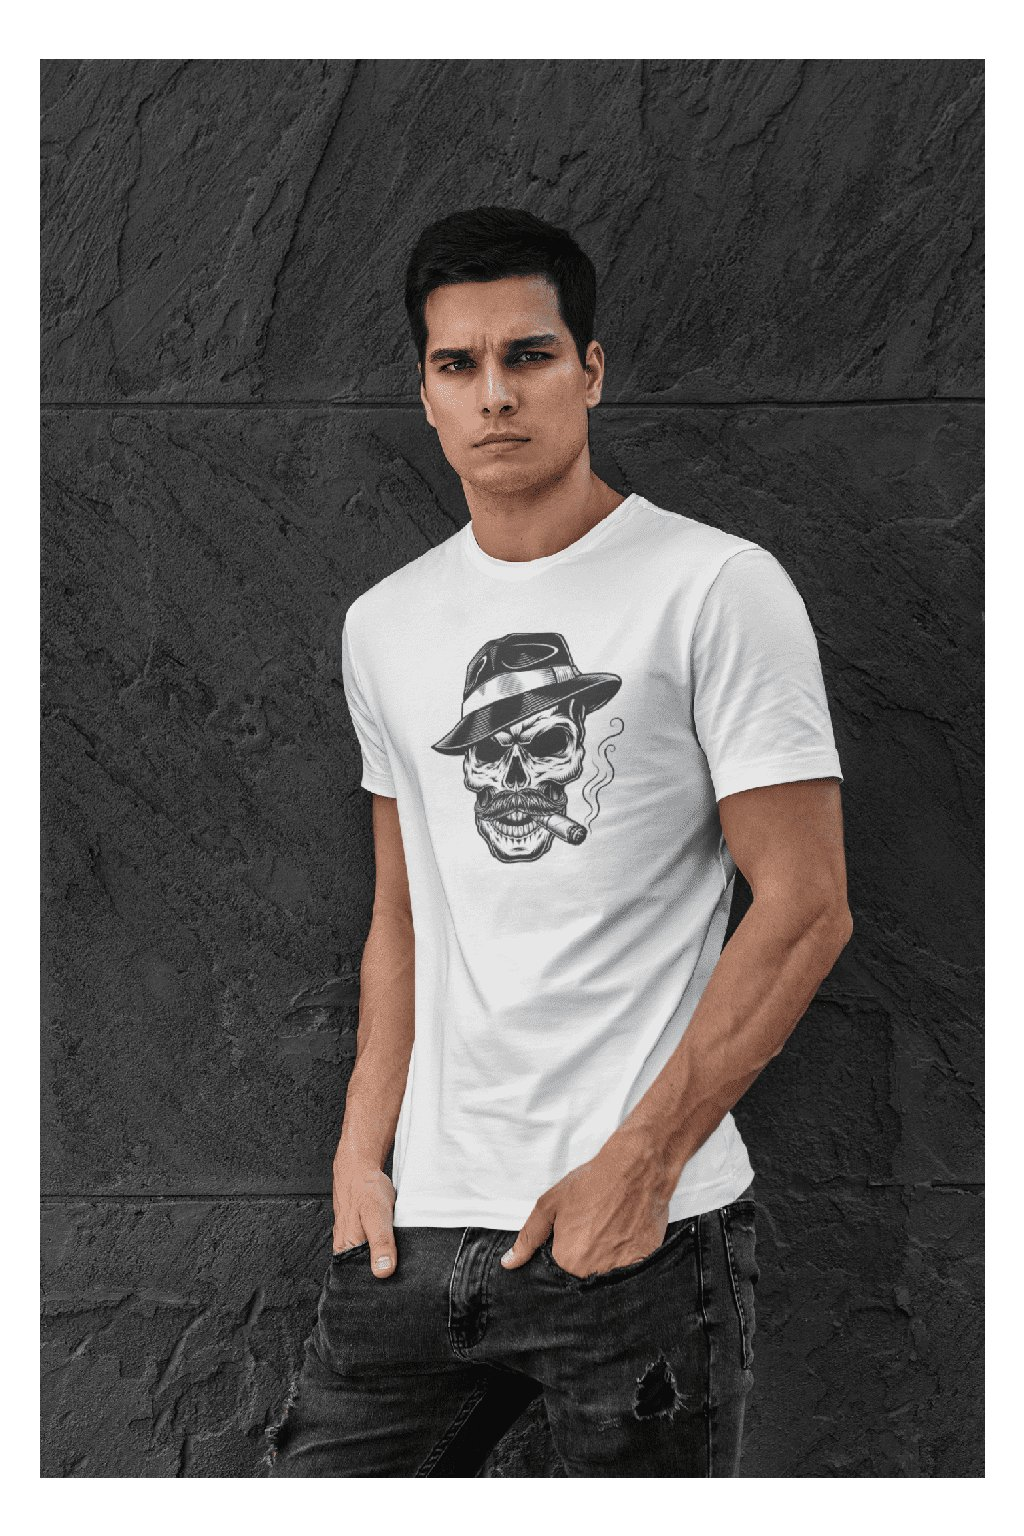 t shirt mockup featuring a serious looking man posing against a dark stone wall 427 el